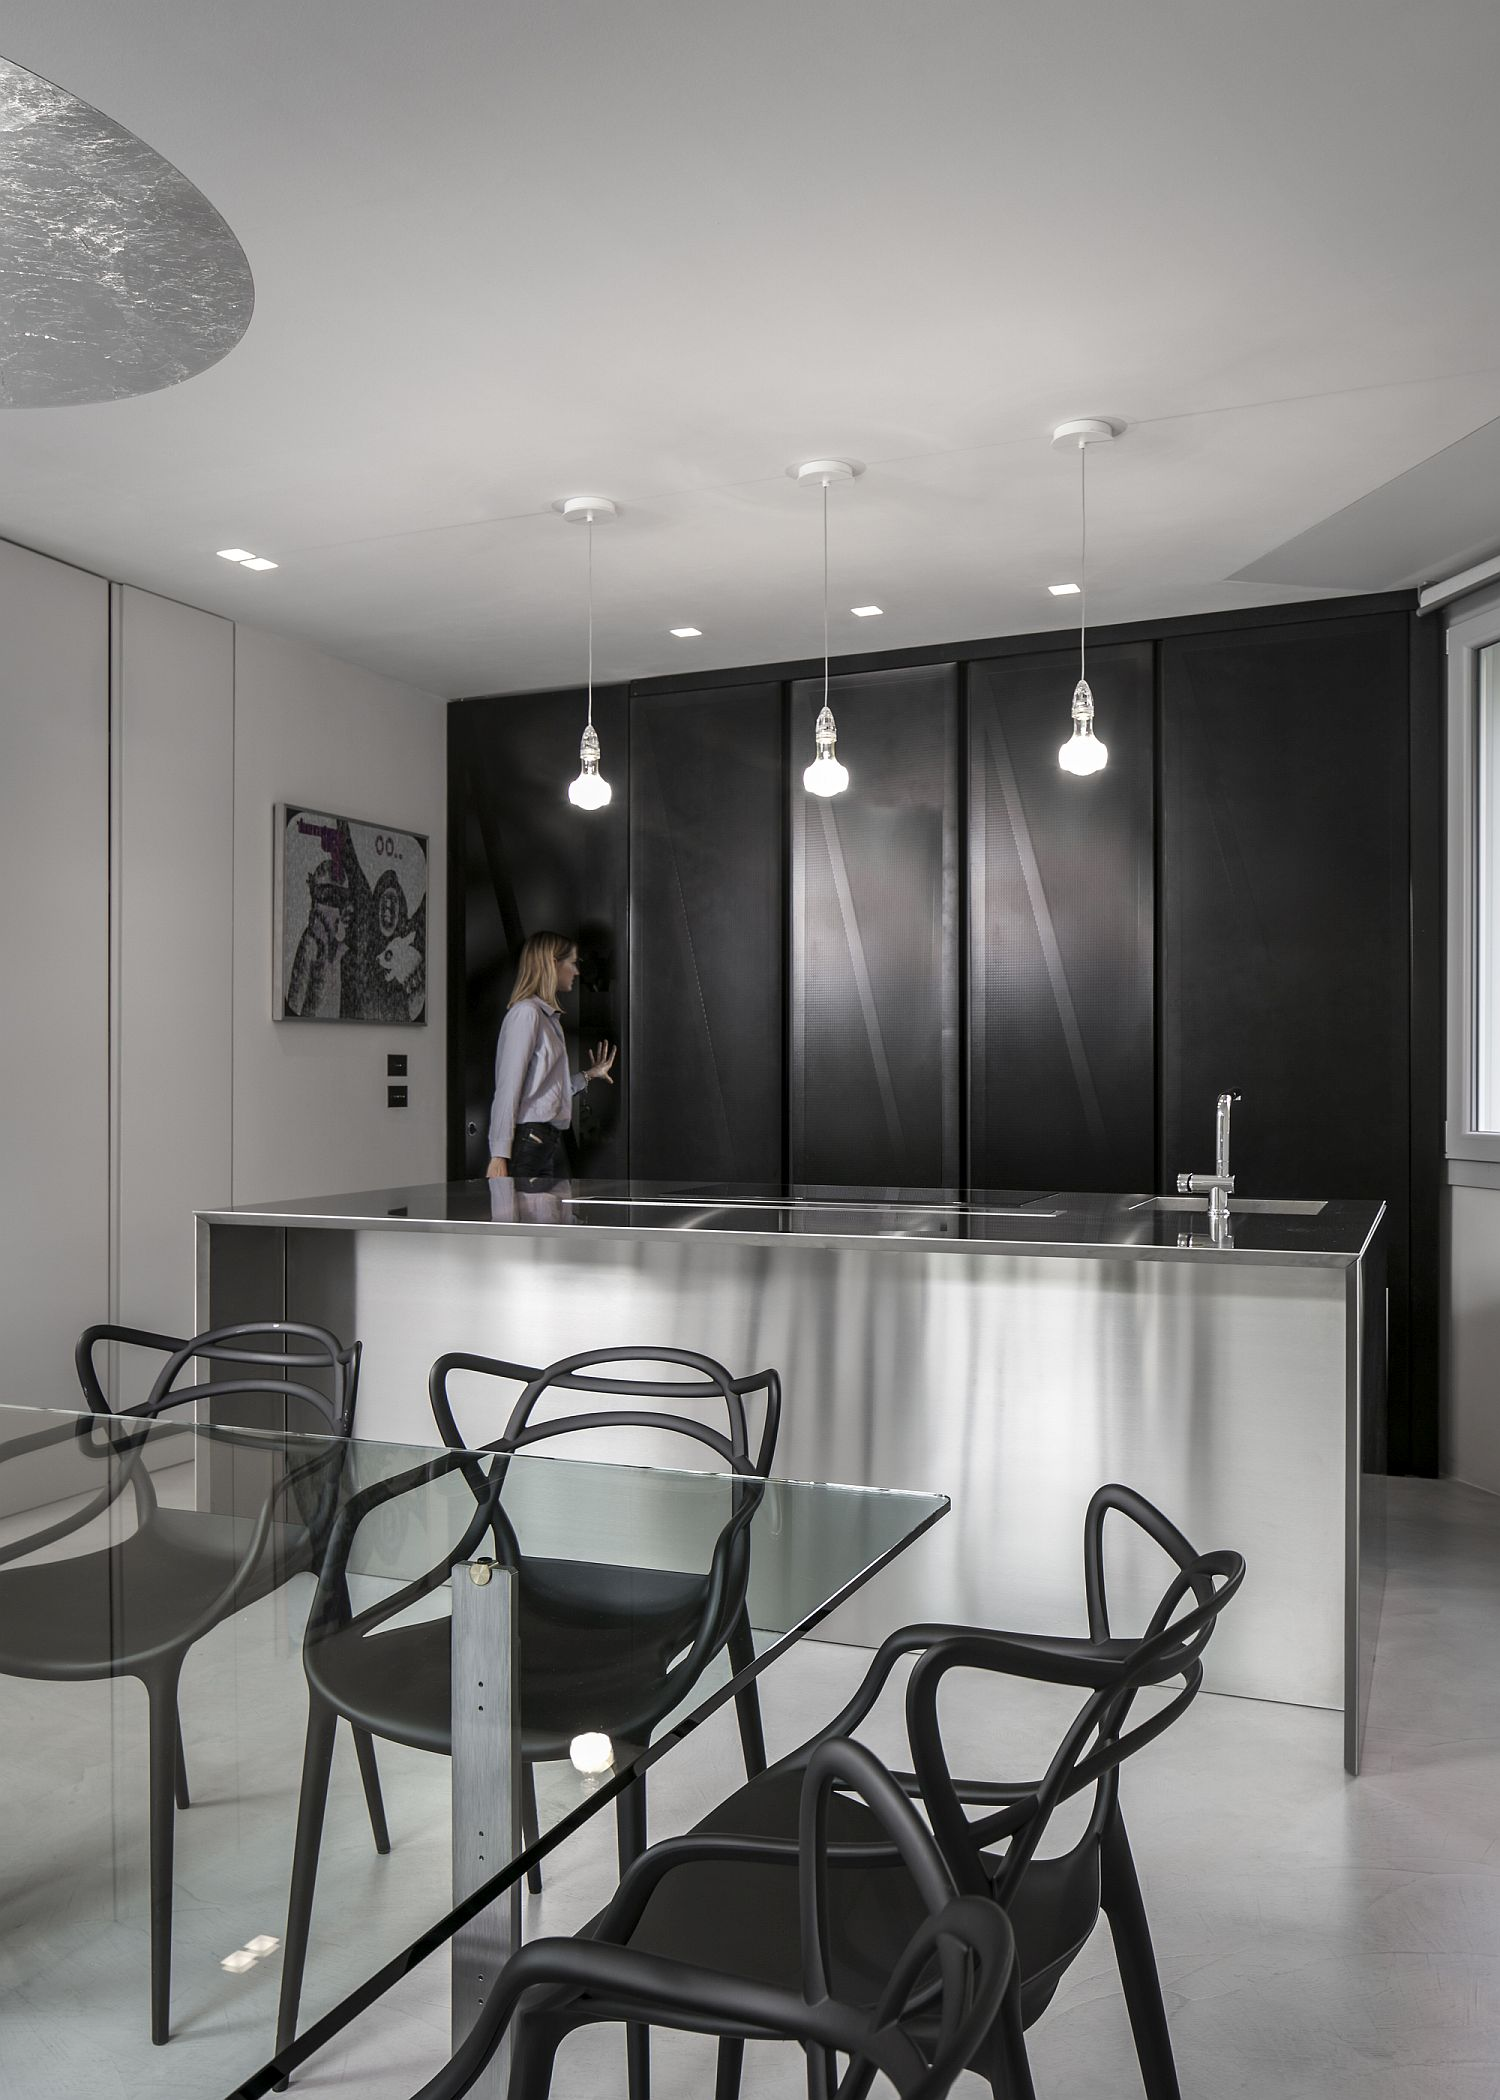 Metallic backdrop in black for the kitchen in neutral hues